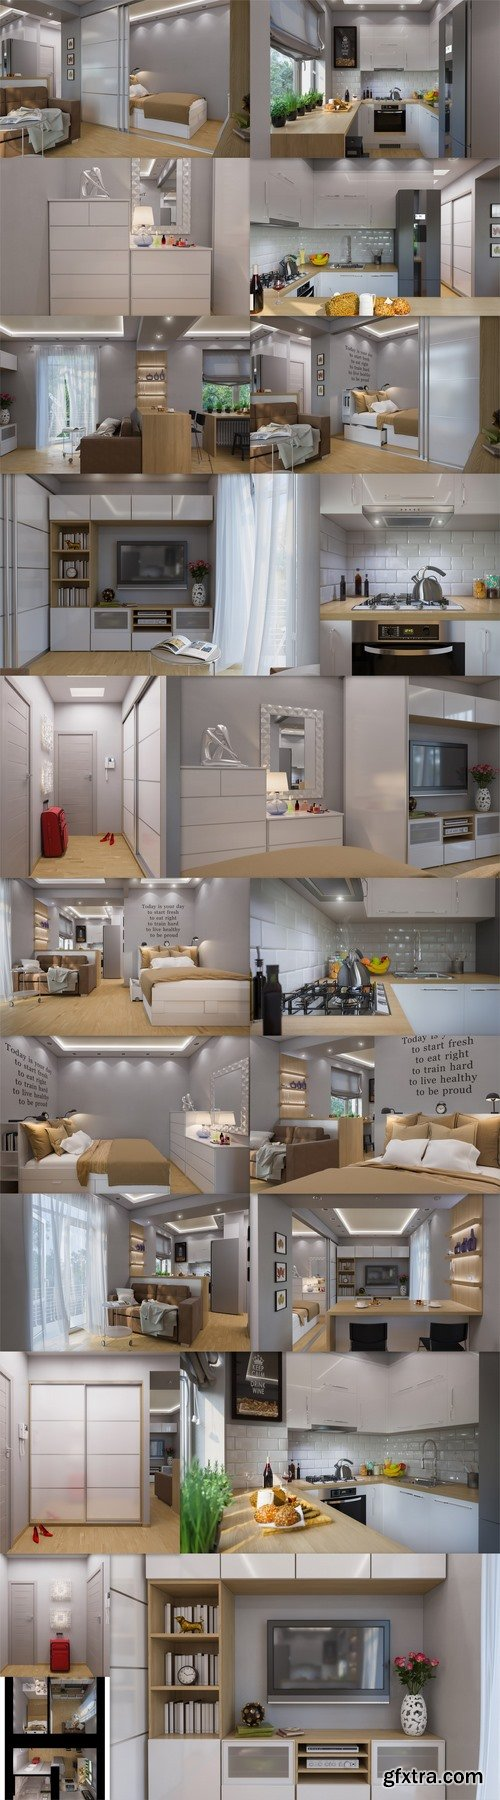 3D rendering living room and bedroom interior design 2 -21